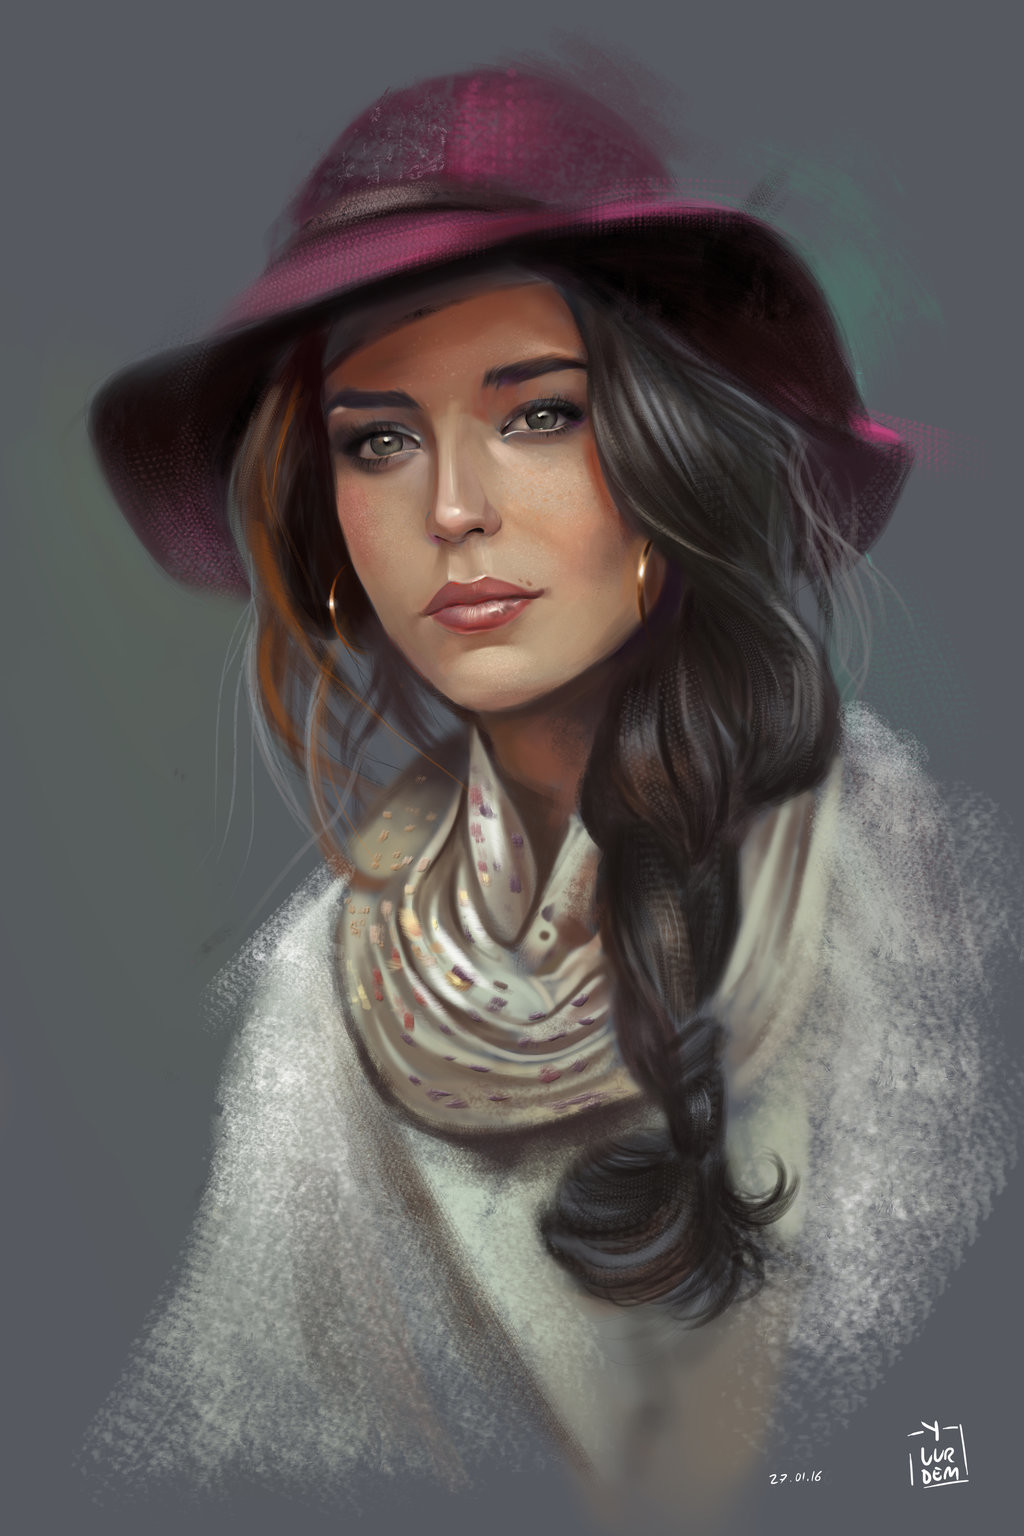 Yasar vurdem photostudy for practice by vurdem d9ply8m